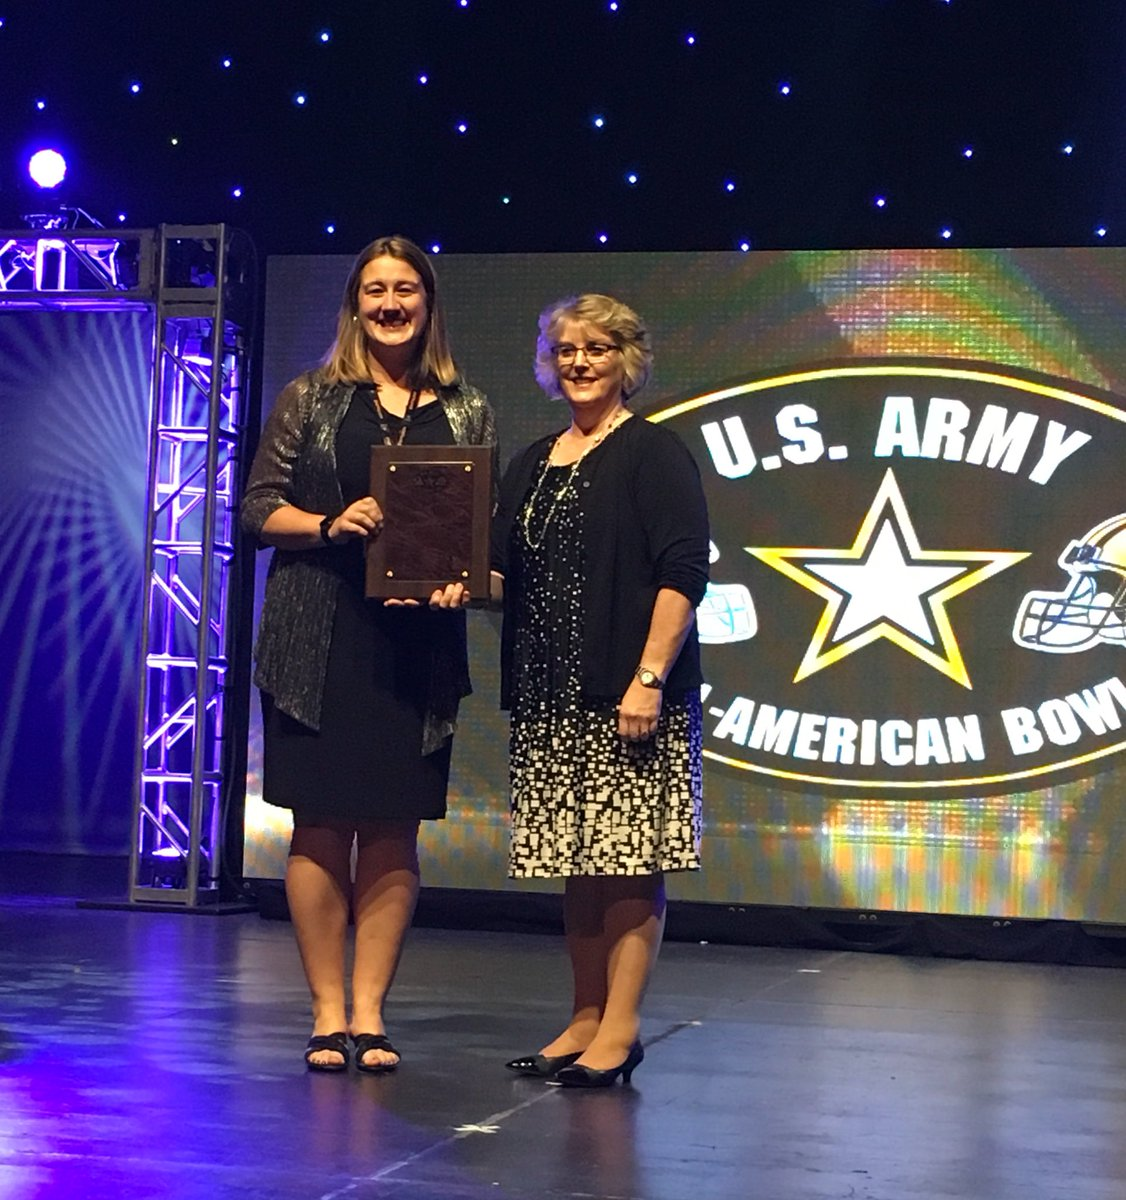 East Rowan High School Director of Bands Emily McNeil receives the 2017 NAfME Band Director of the Year Award from NAfME President Denese Odegaard.